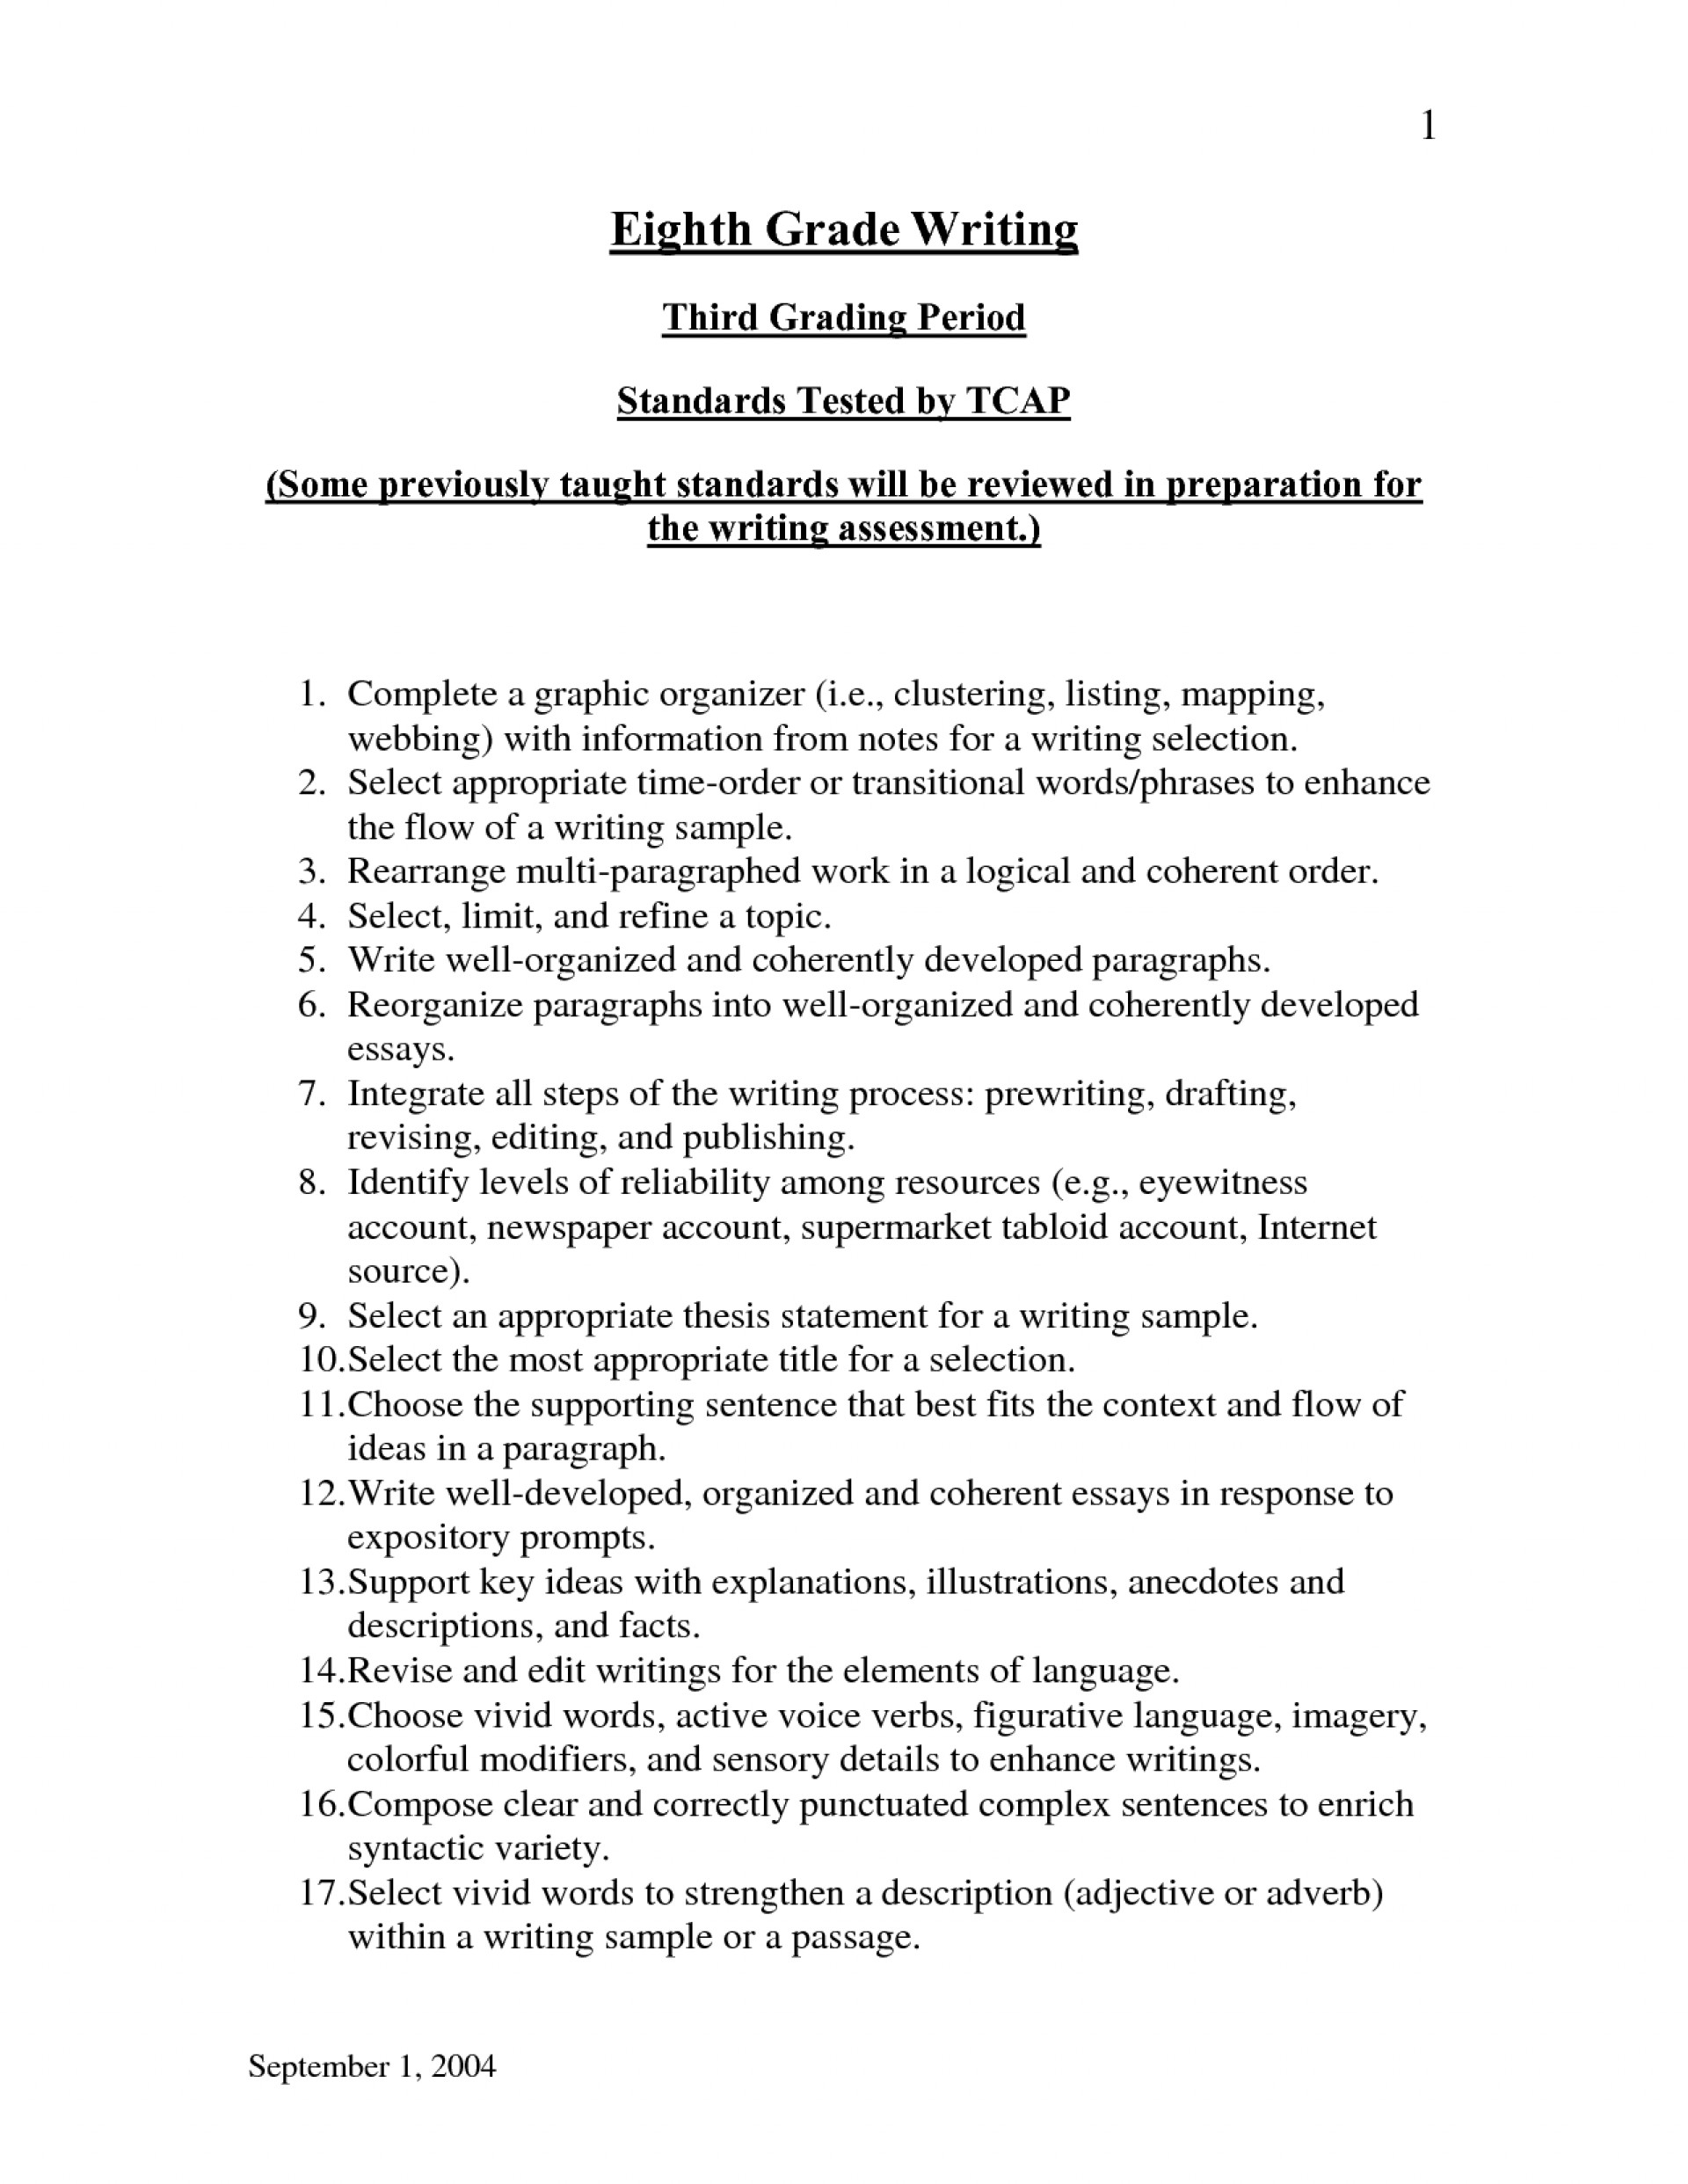 012 Essay Example What Is An Expository Writing Prompts For High School 1088622 Magnificent Gcu Middle Powerpoint 1920